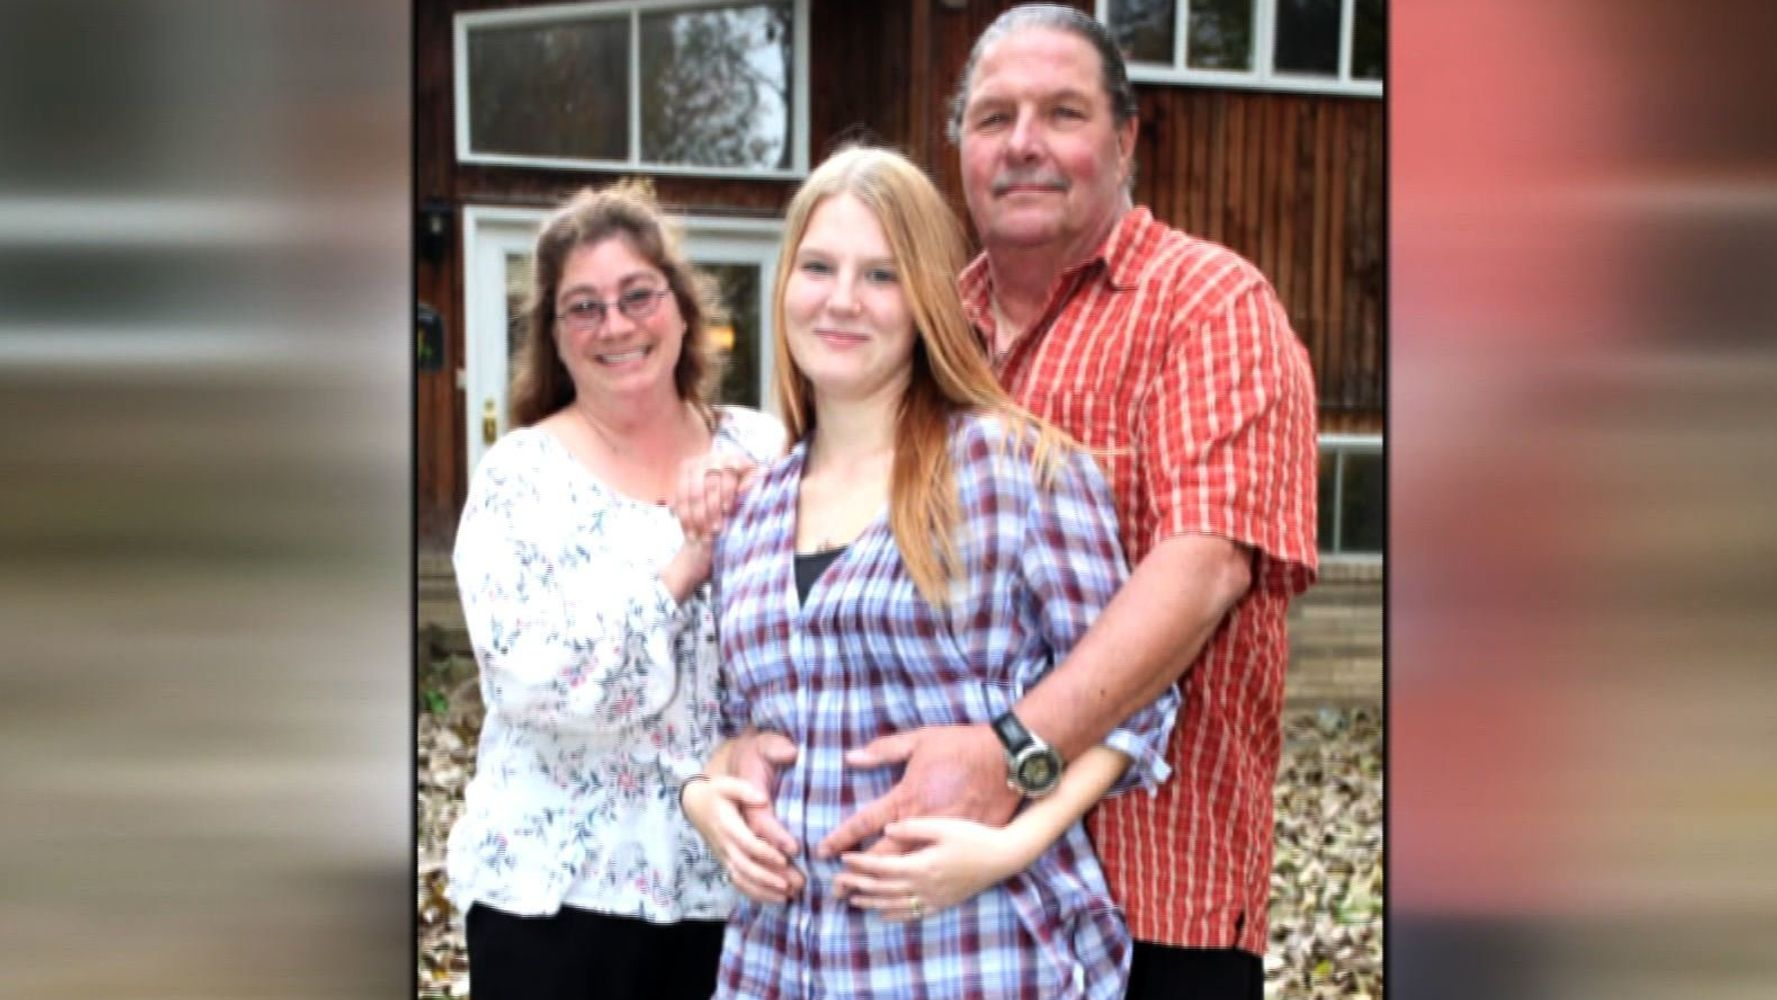 61-Year-Old Pastor Marries 19-Year-Old Pregnant Girlfriend